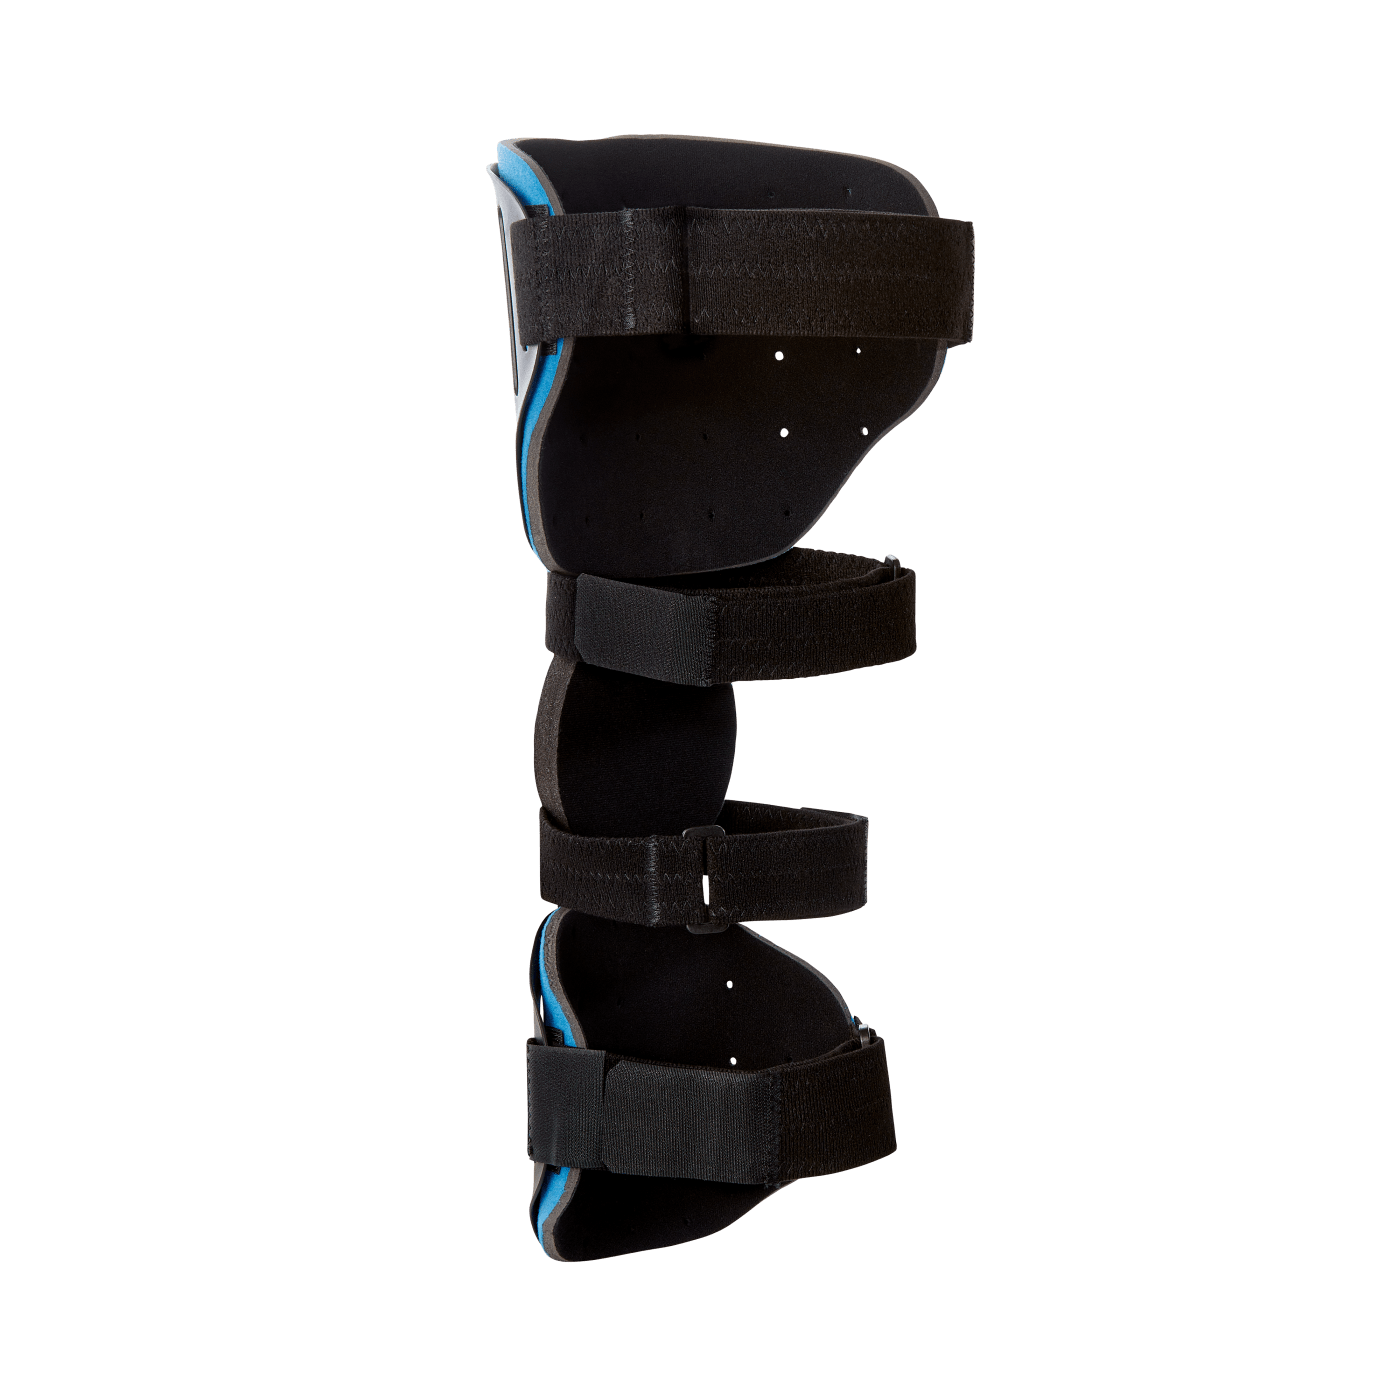 Ossur Exoform Knee Immobilizer